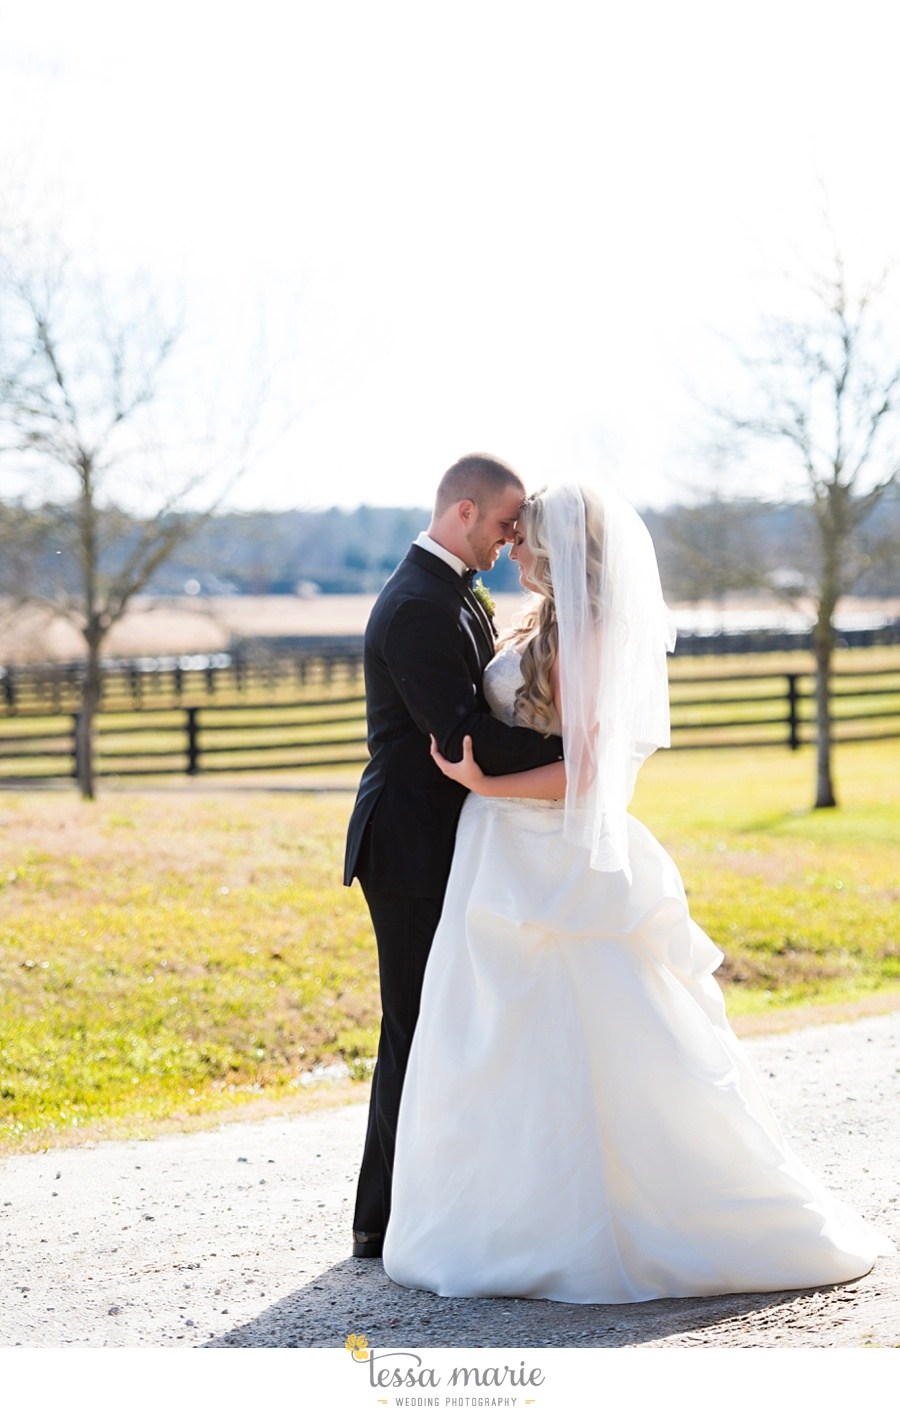 foxhall_outdoor_wedding_stables_pictures_tessa_marie_weddings_kayla_buck_bloomin_bouquets_joan_pillow_atlanta_wedding_pictures_0083